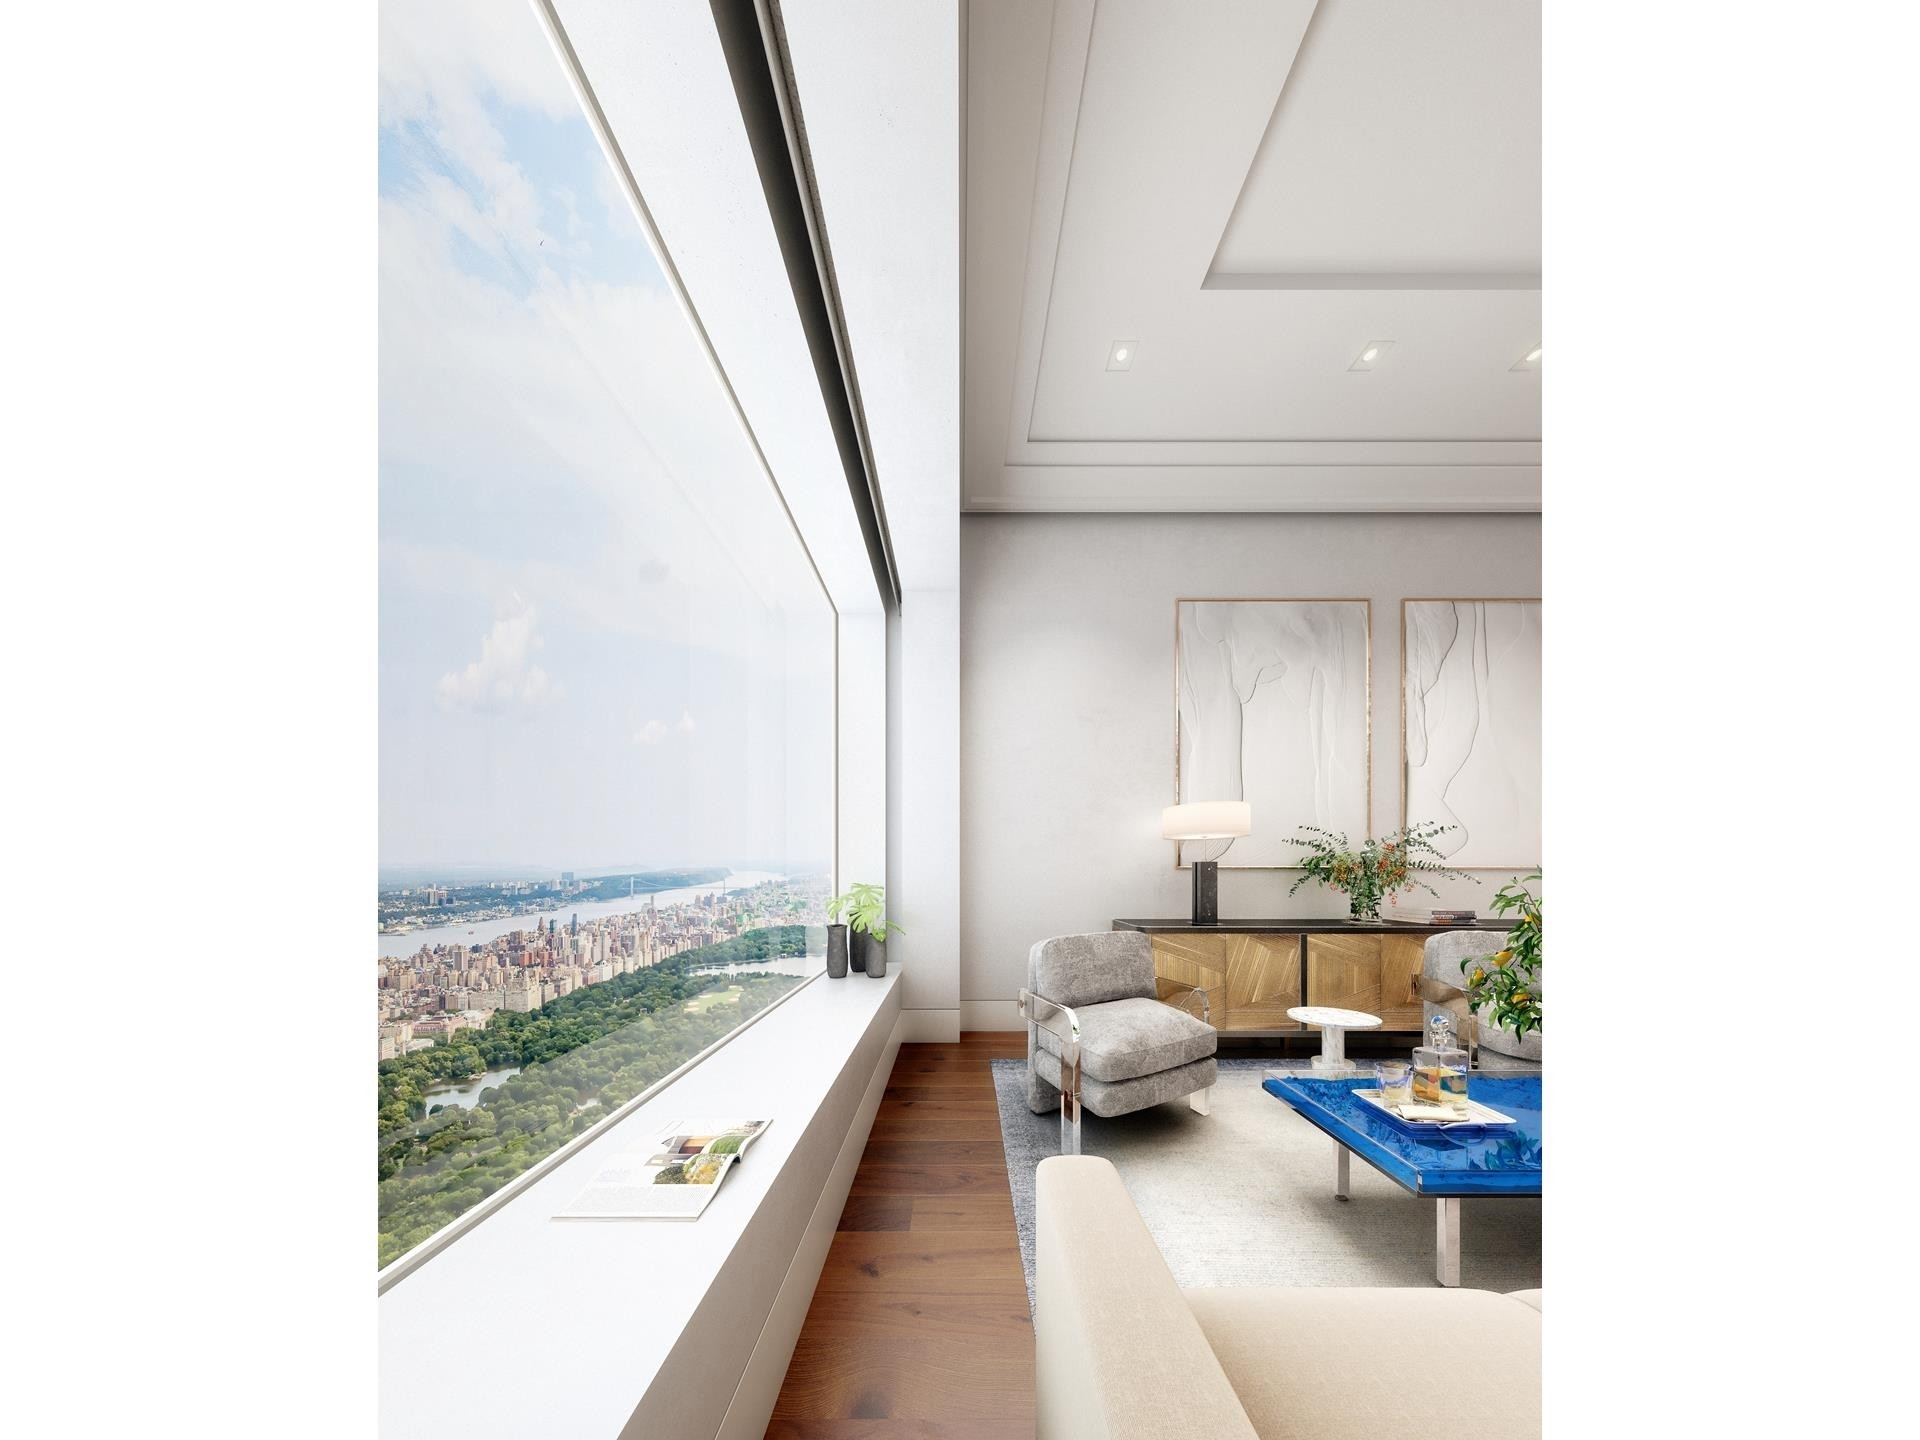 Property at 432 PARK AVE , 82FL Midtown East, New York, NY 10022